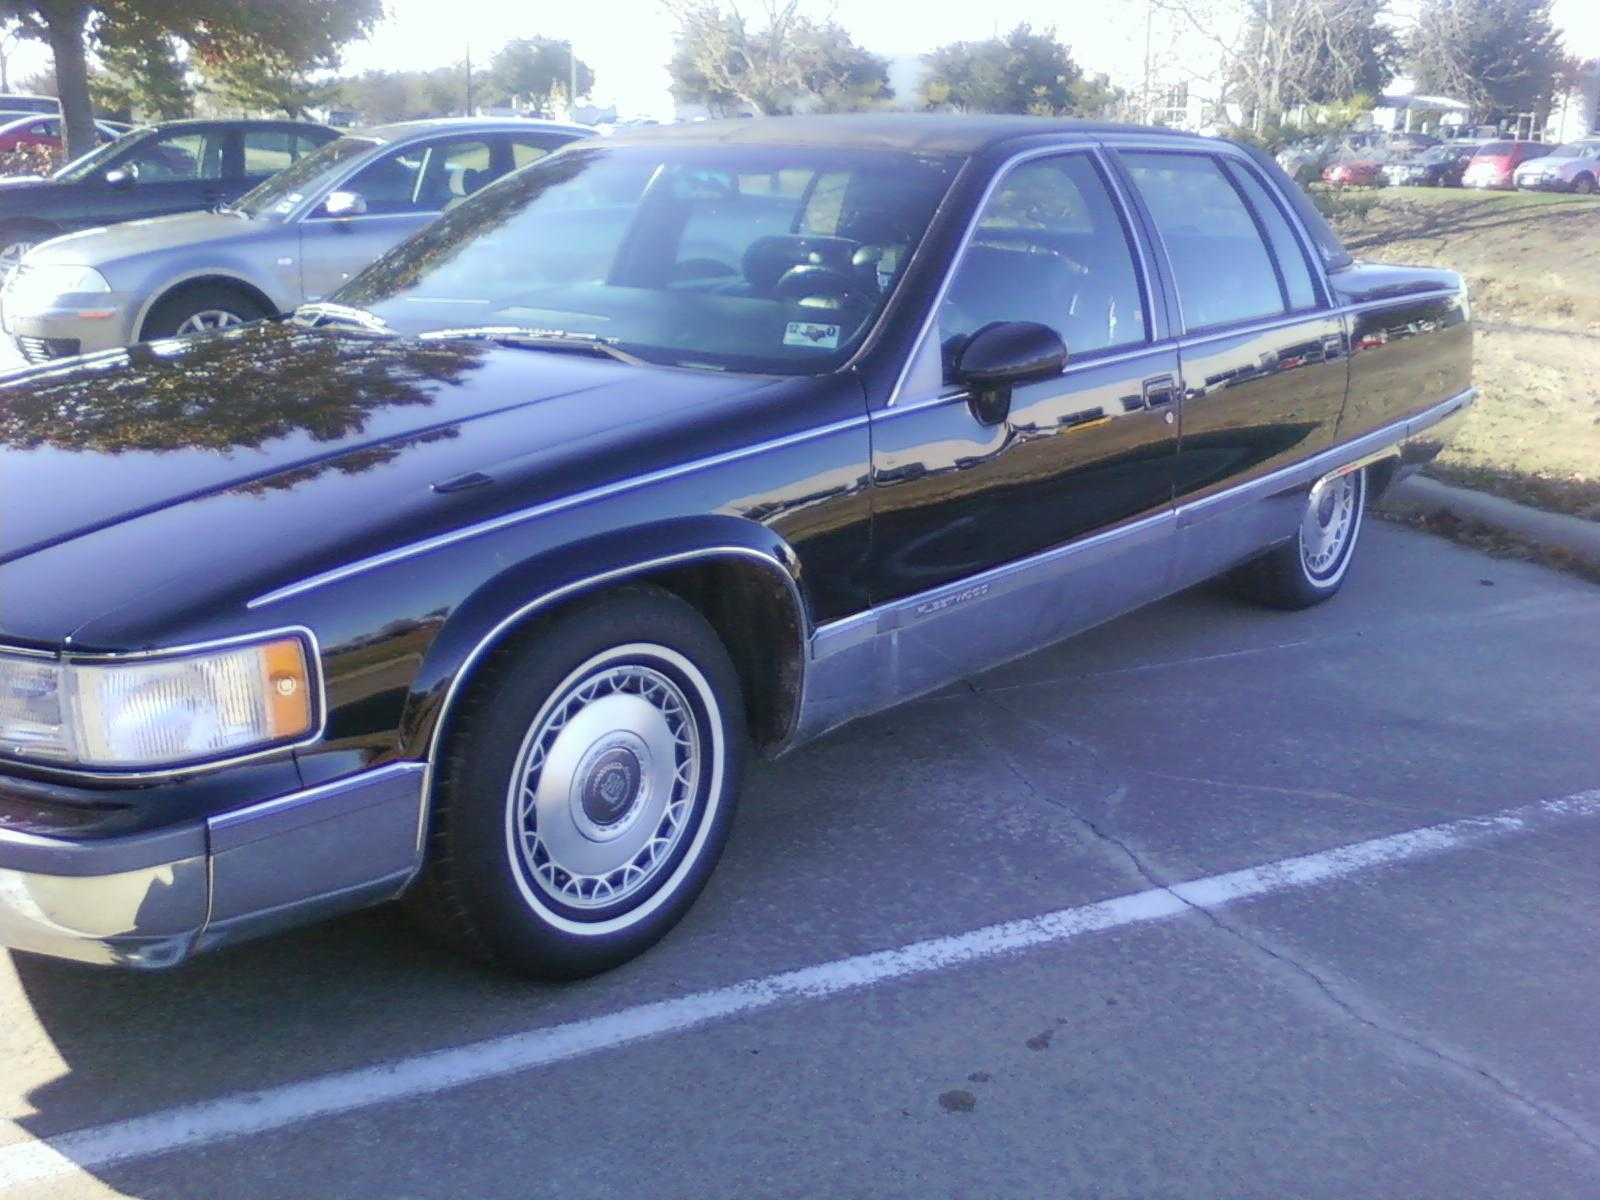 vanchopped 39 s 1994 cadillac fleetwood in garland tx. Cars Review. Best American Auto & Cars Review